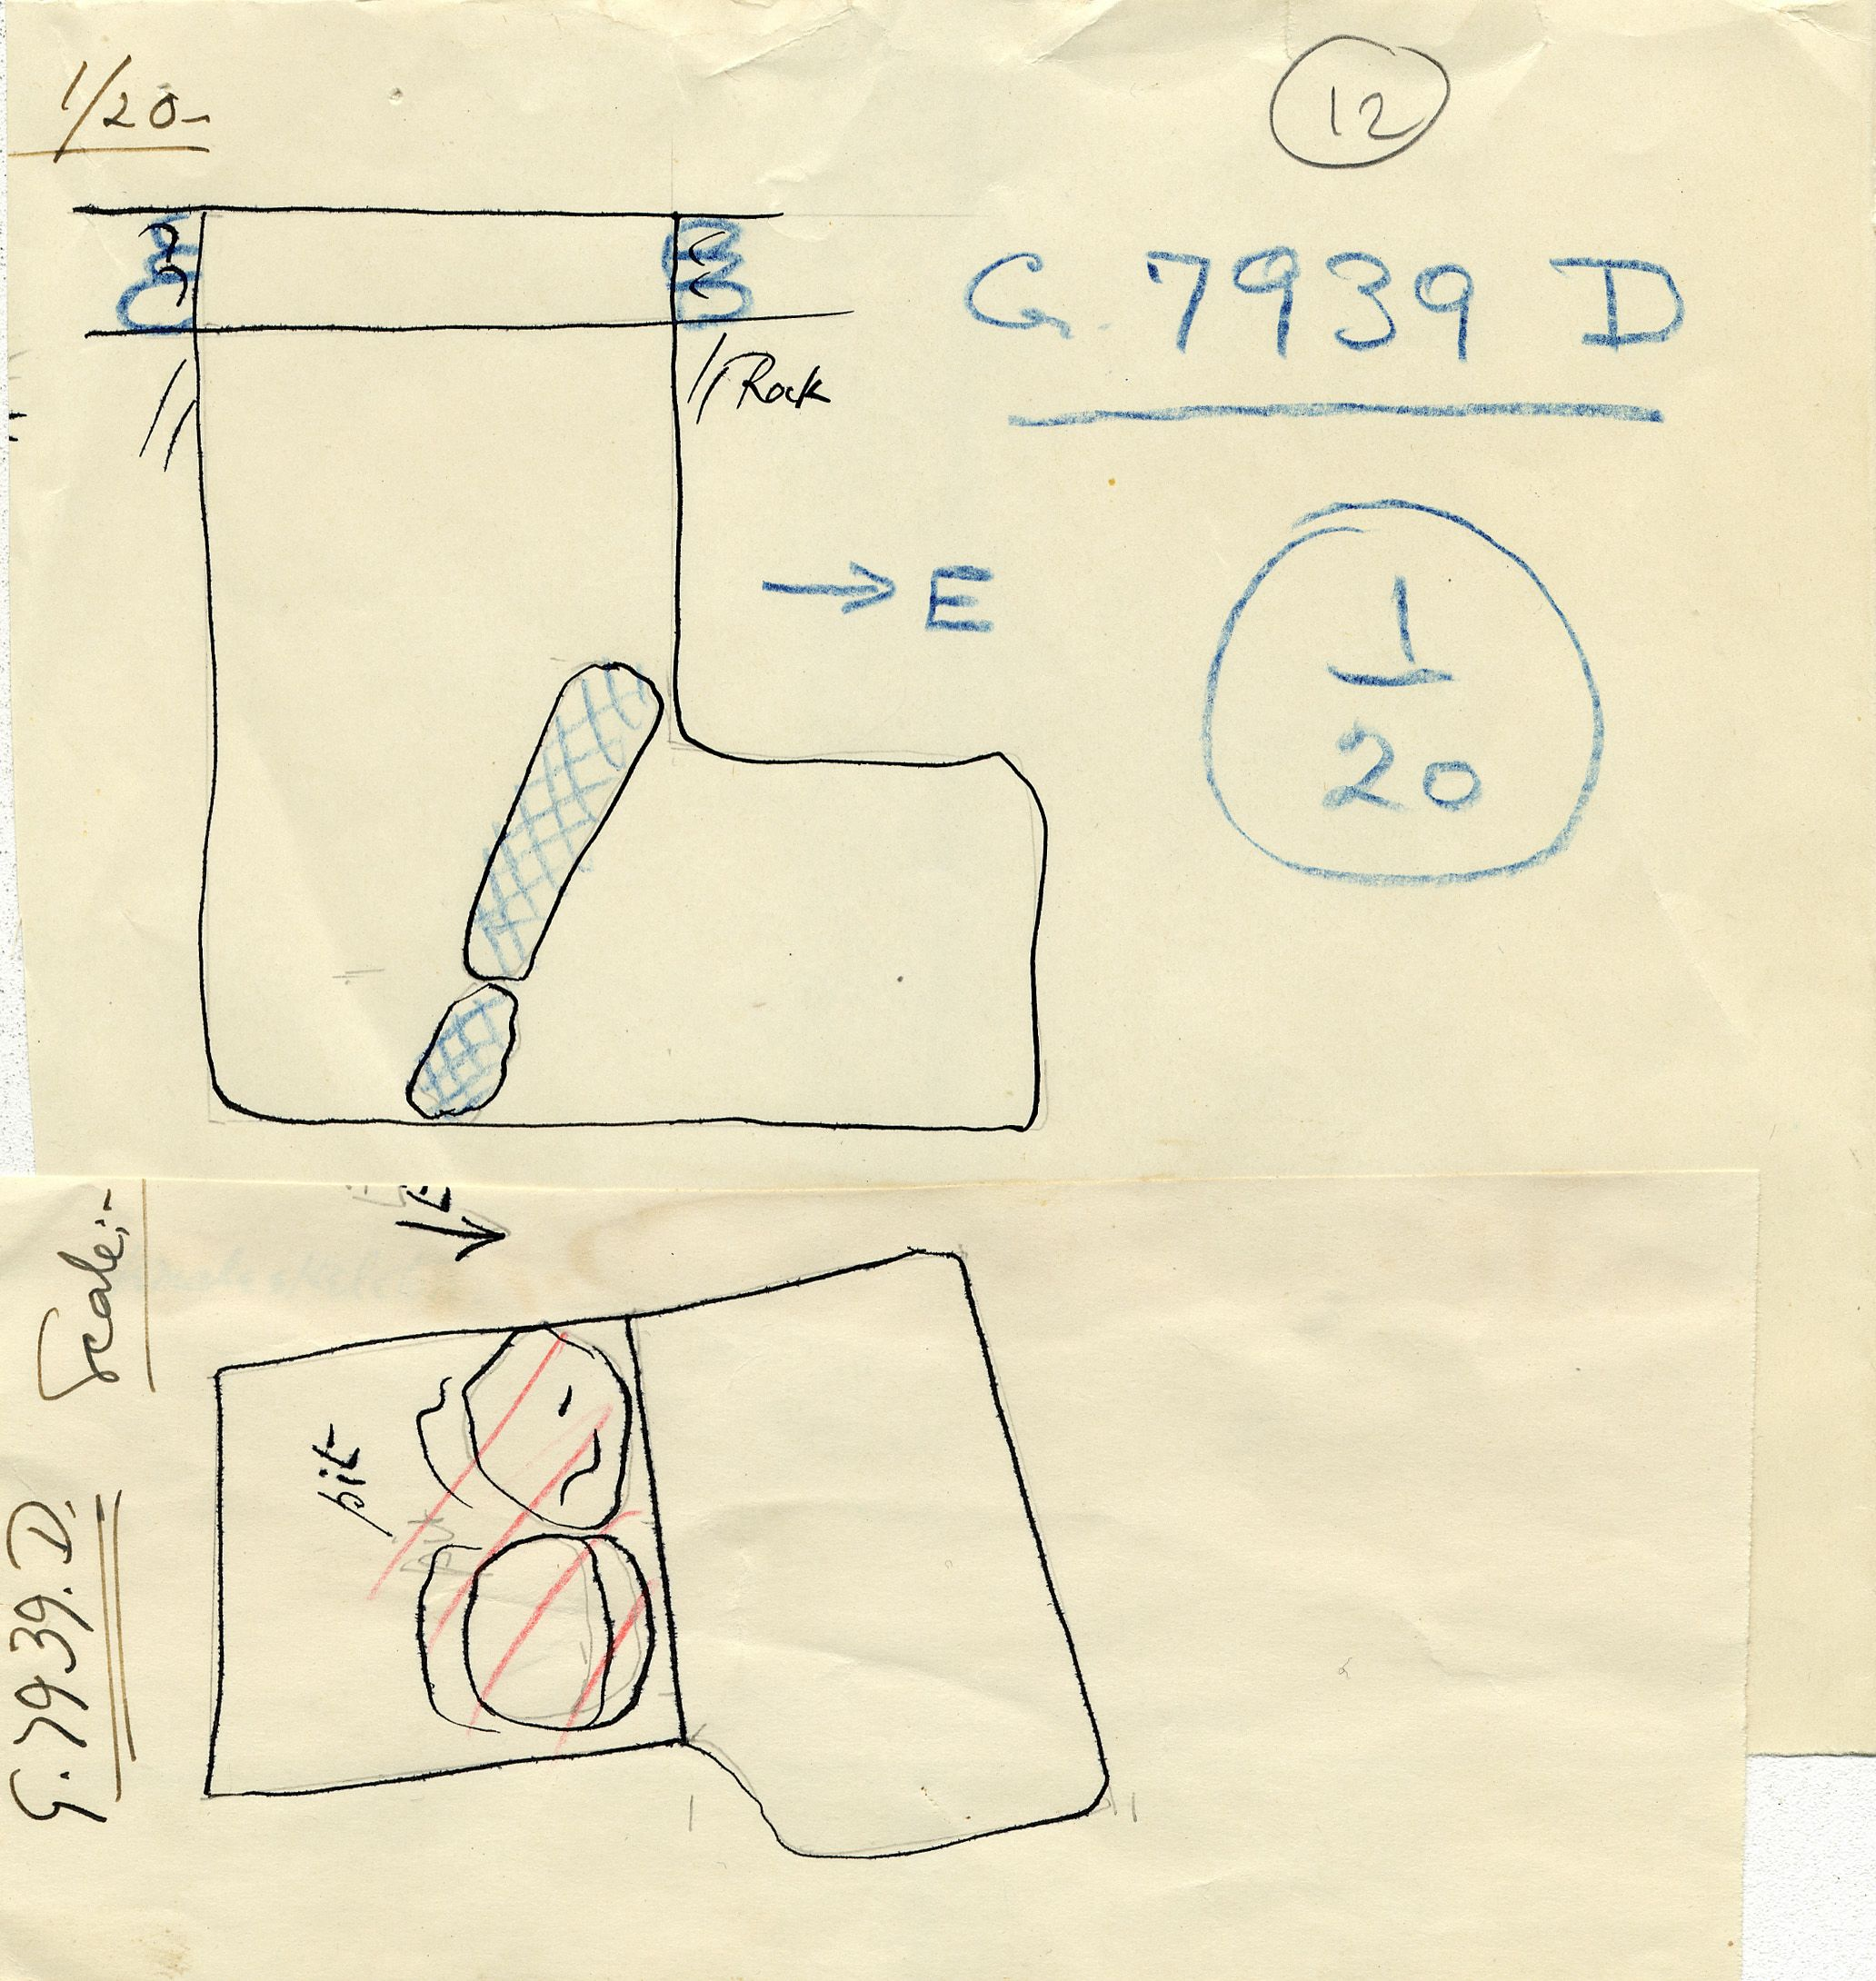 Maps and plans: G 7939, Shaft D